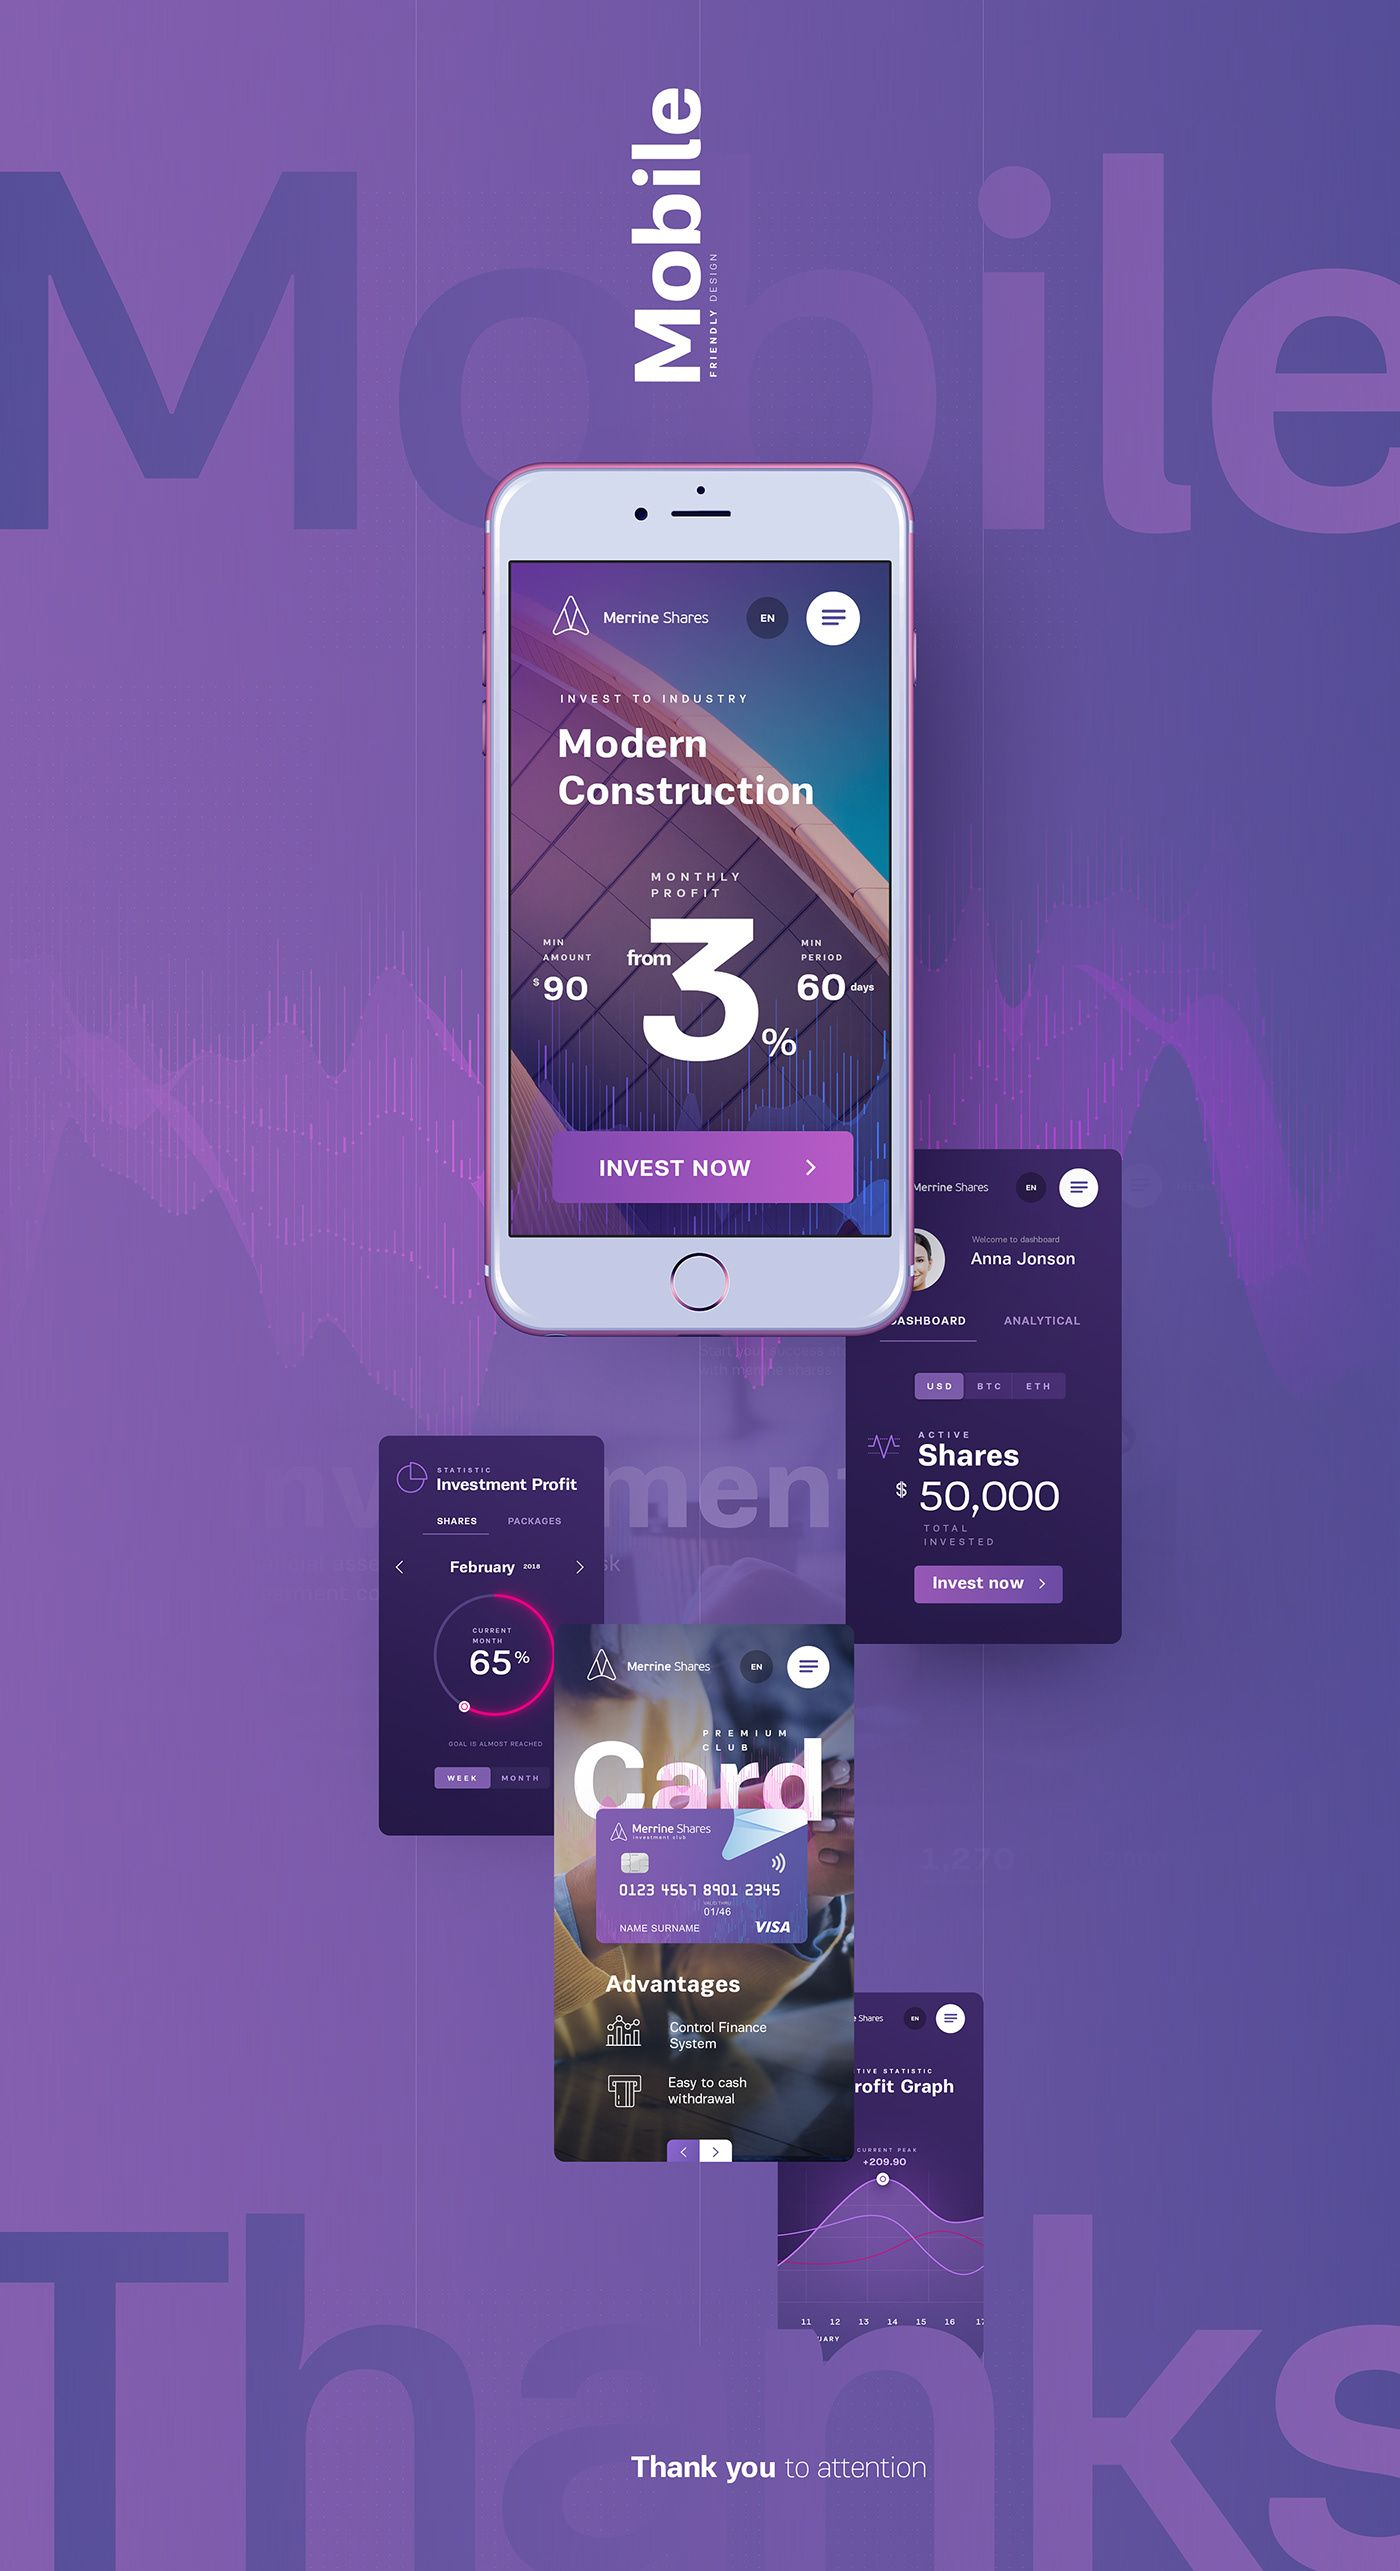 Investment Club On Behance Investment Club App Design Inspiration Investing